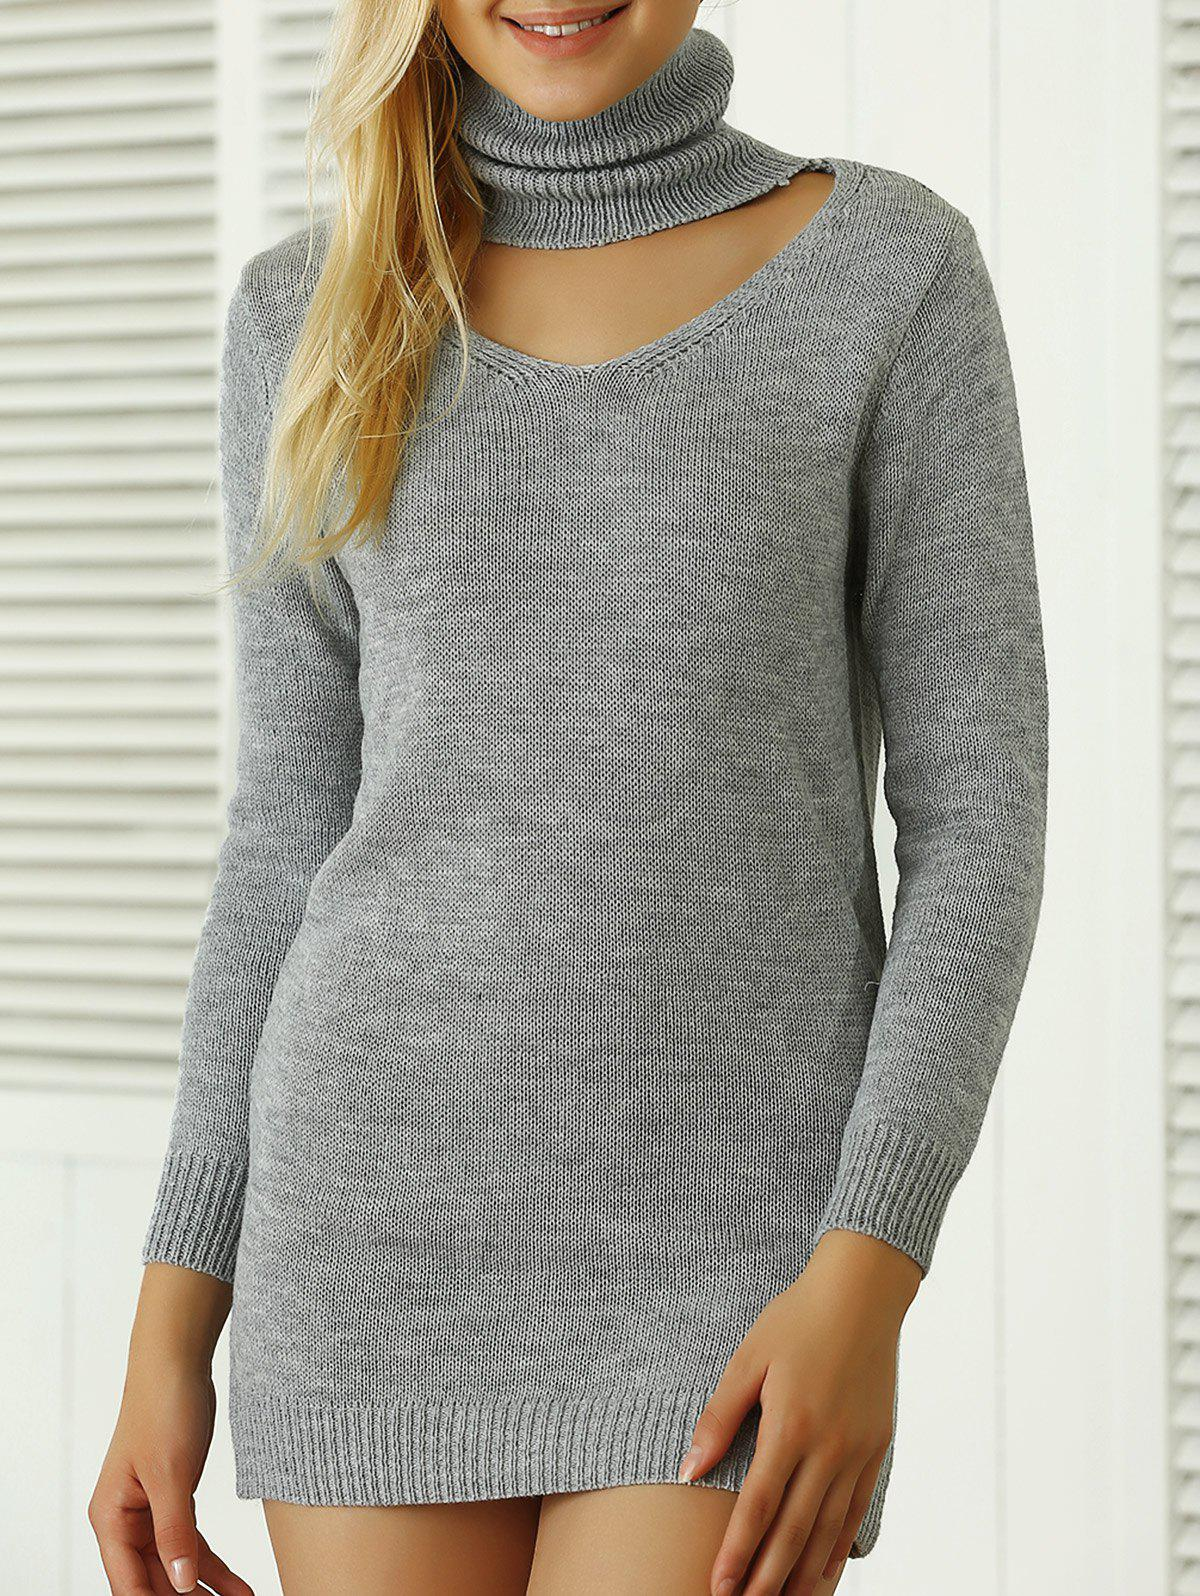 Roll Neck Ribbed Plain Mini Jumper Dress - GRAY ONE SIZE